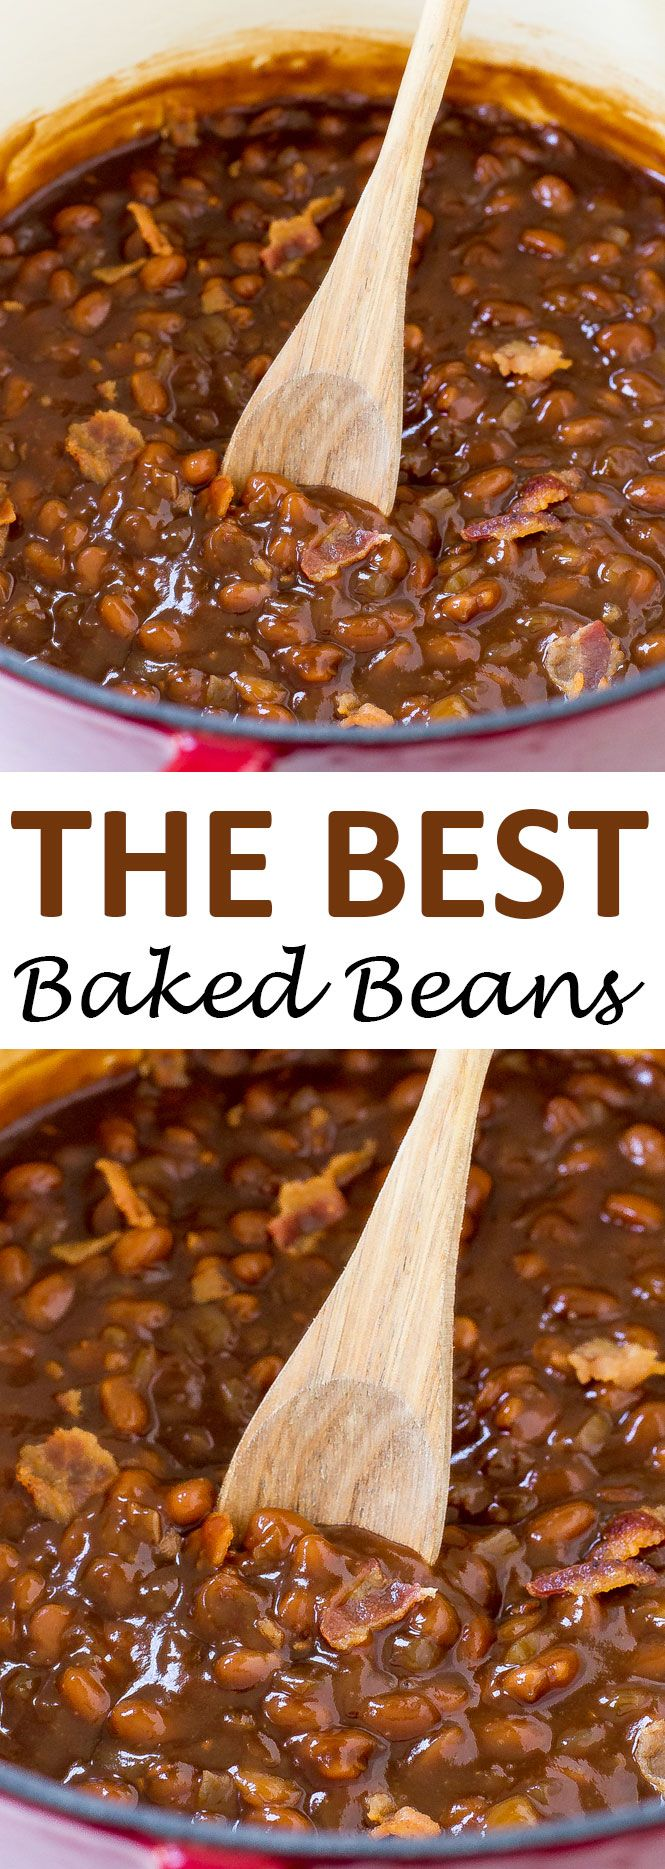 The BEST Baked Beans. The perfect side dish for barbecues, picnics or for Fourth of July! | chefsavvy.com #recipe #baked #beans #side